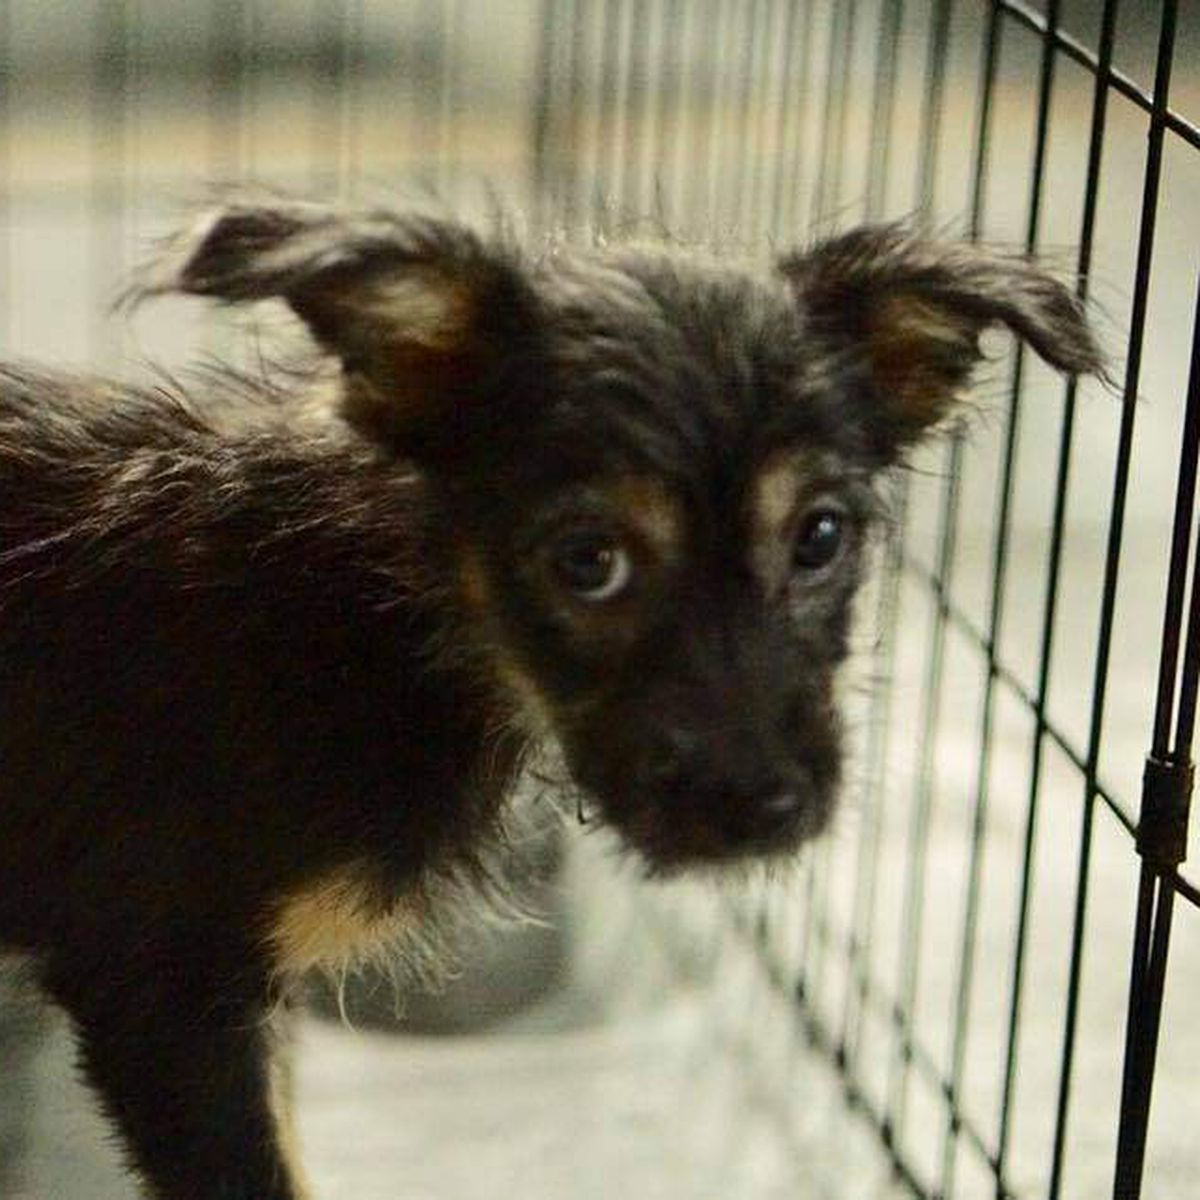 Tampa Bay shelter rescues 111 animals from Puerto Rico